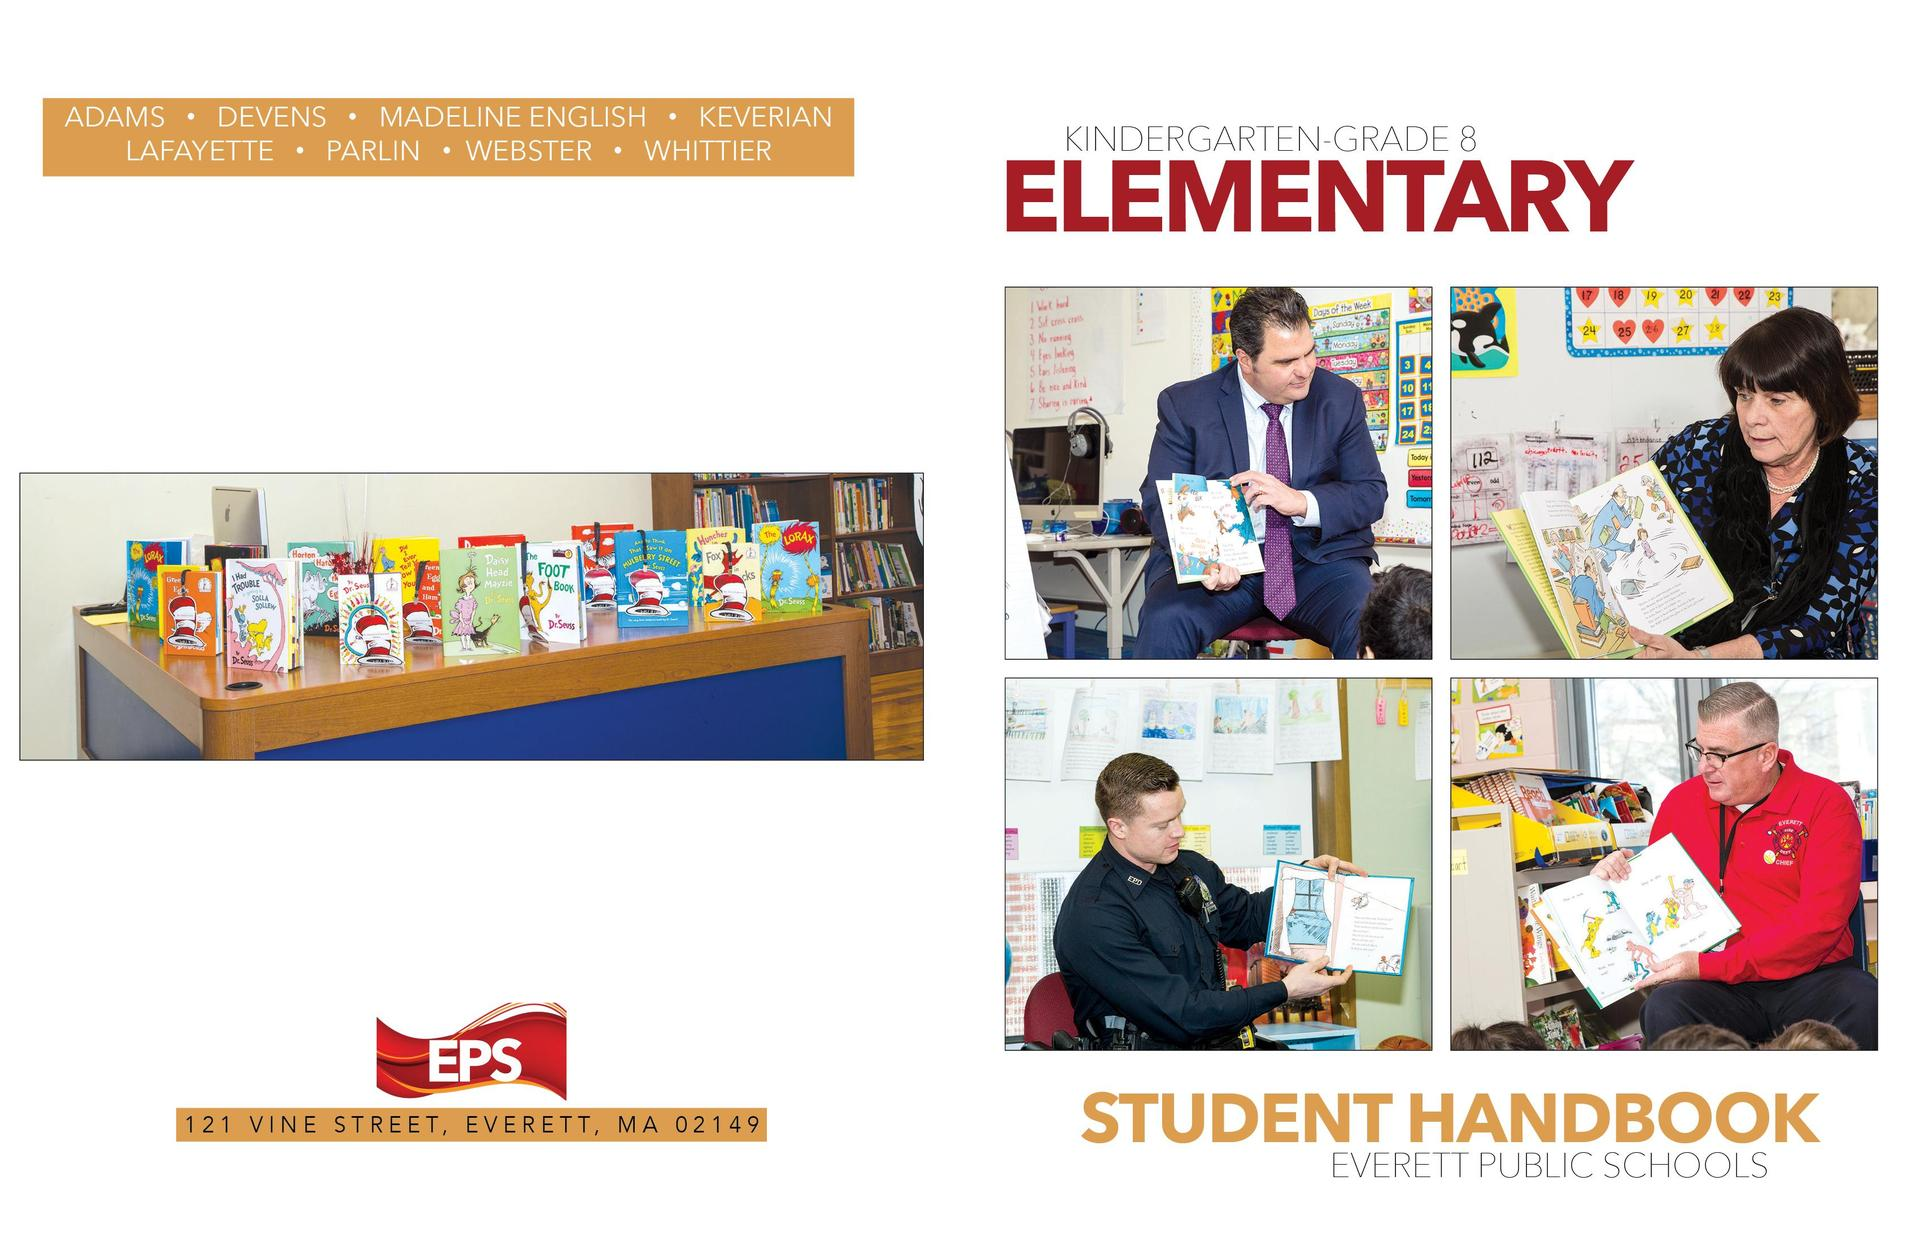 Elementary handbook front and back cover, with four images of people reading to students